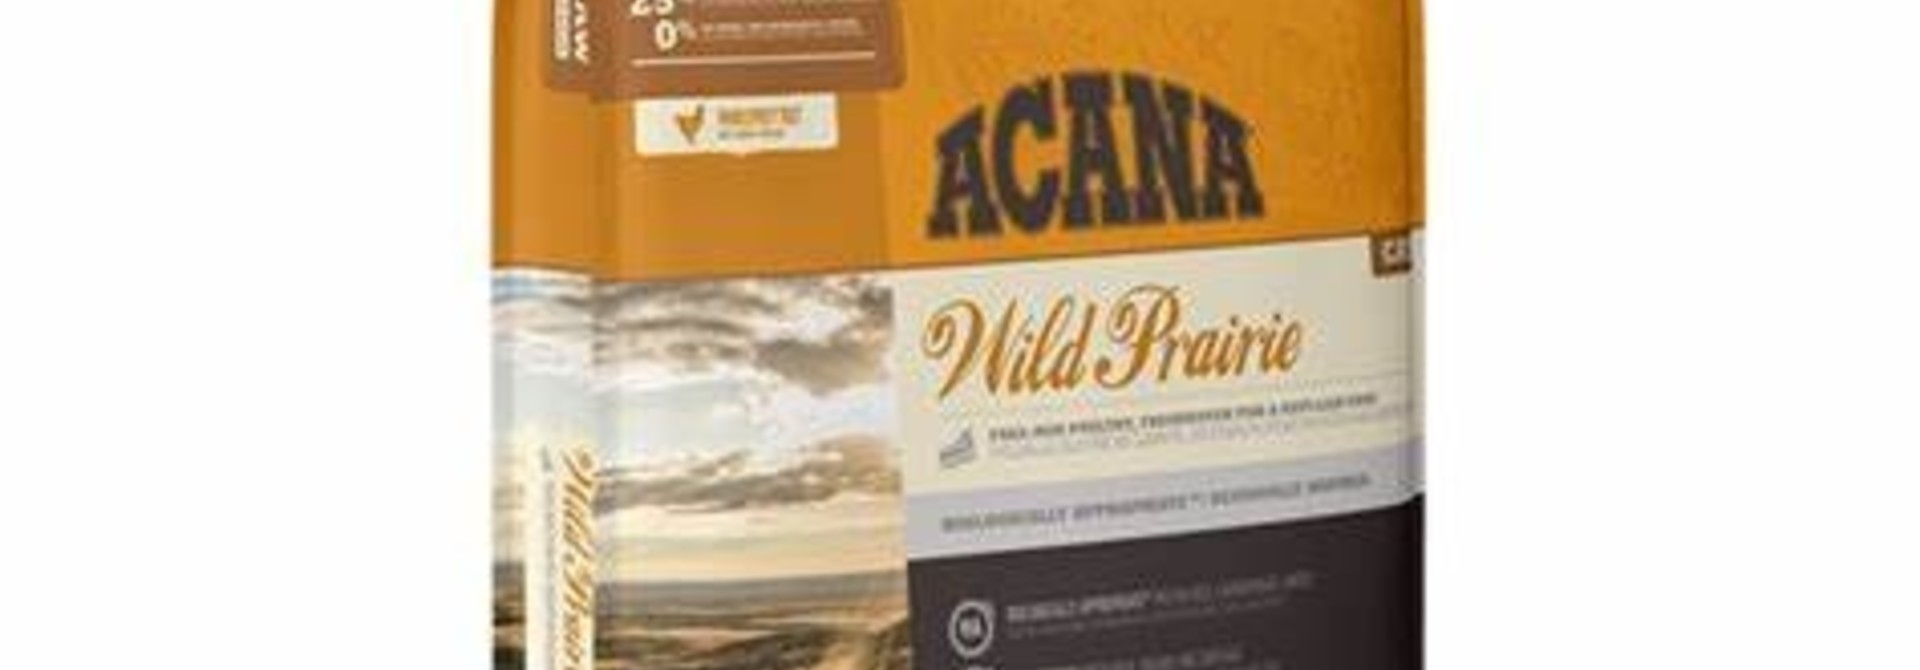 AC Wild Prairie Cat Food